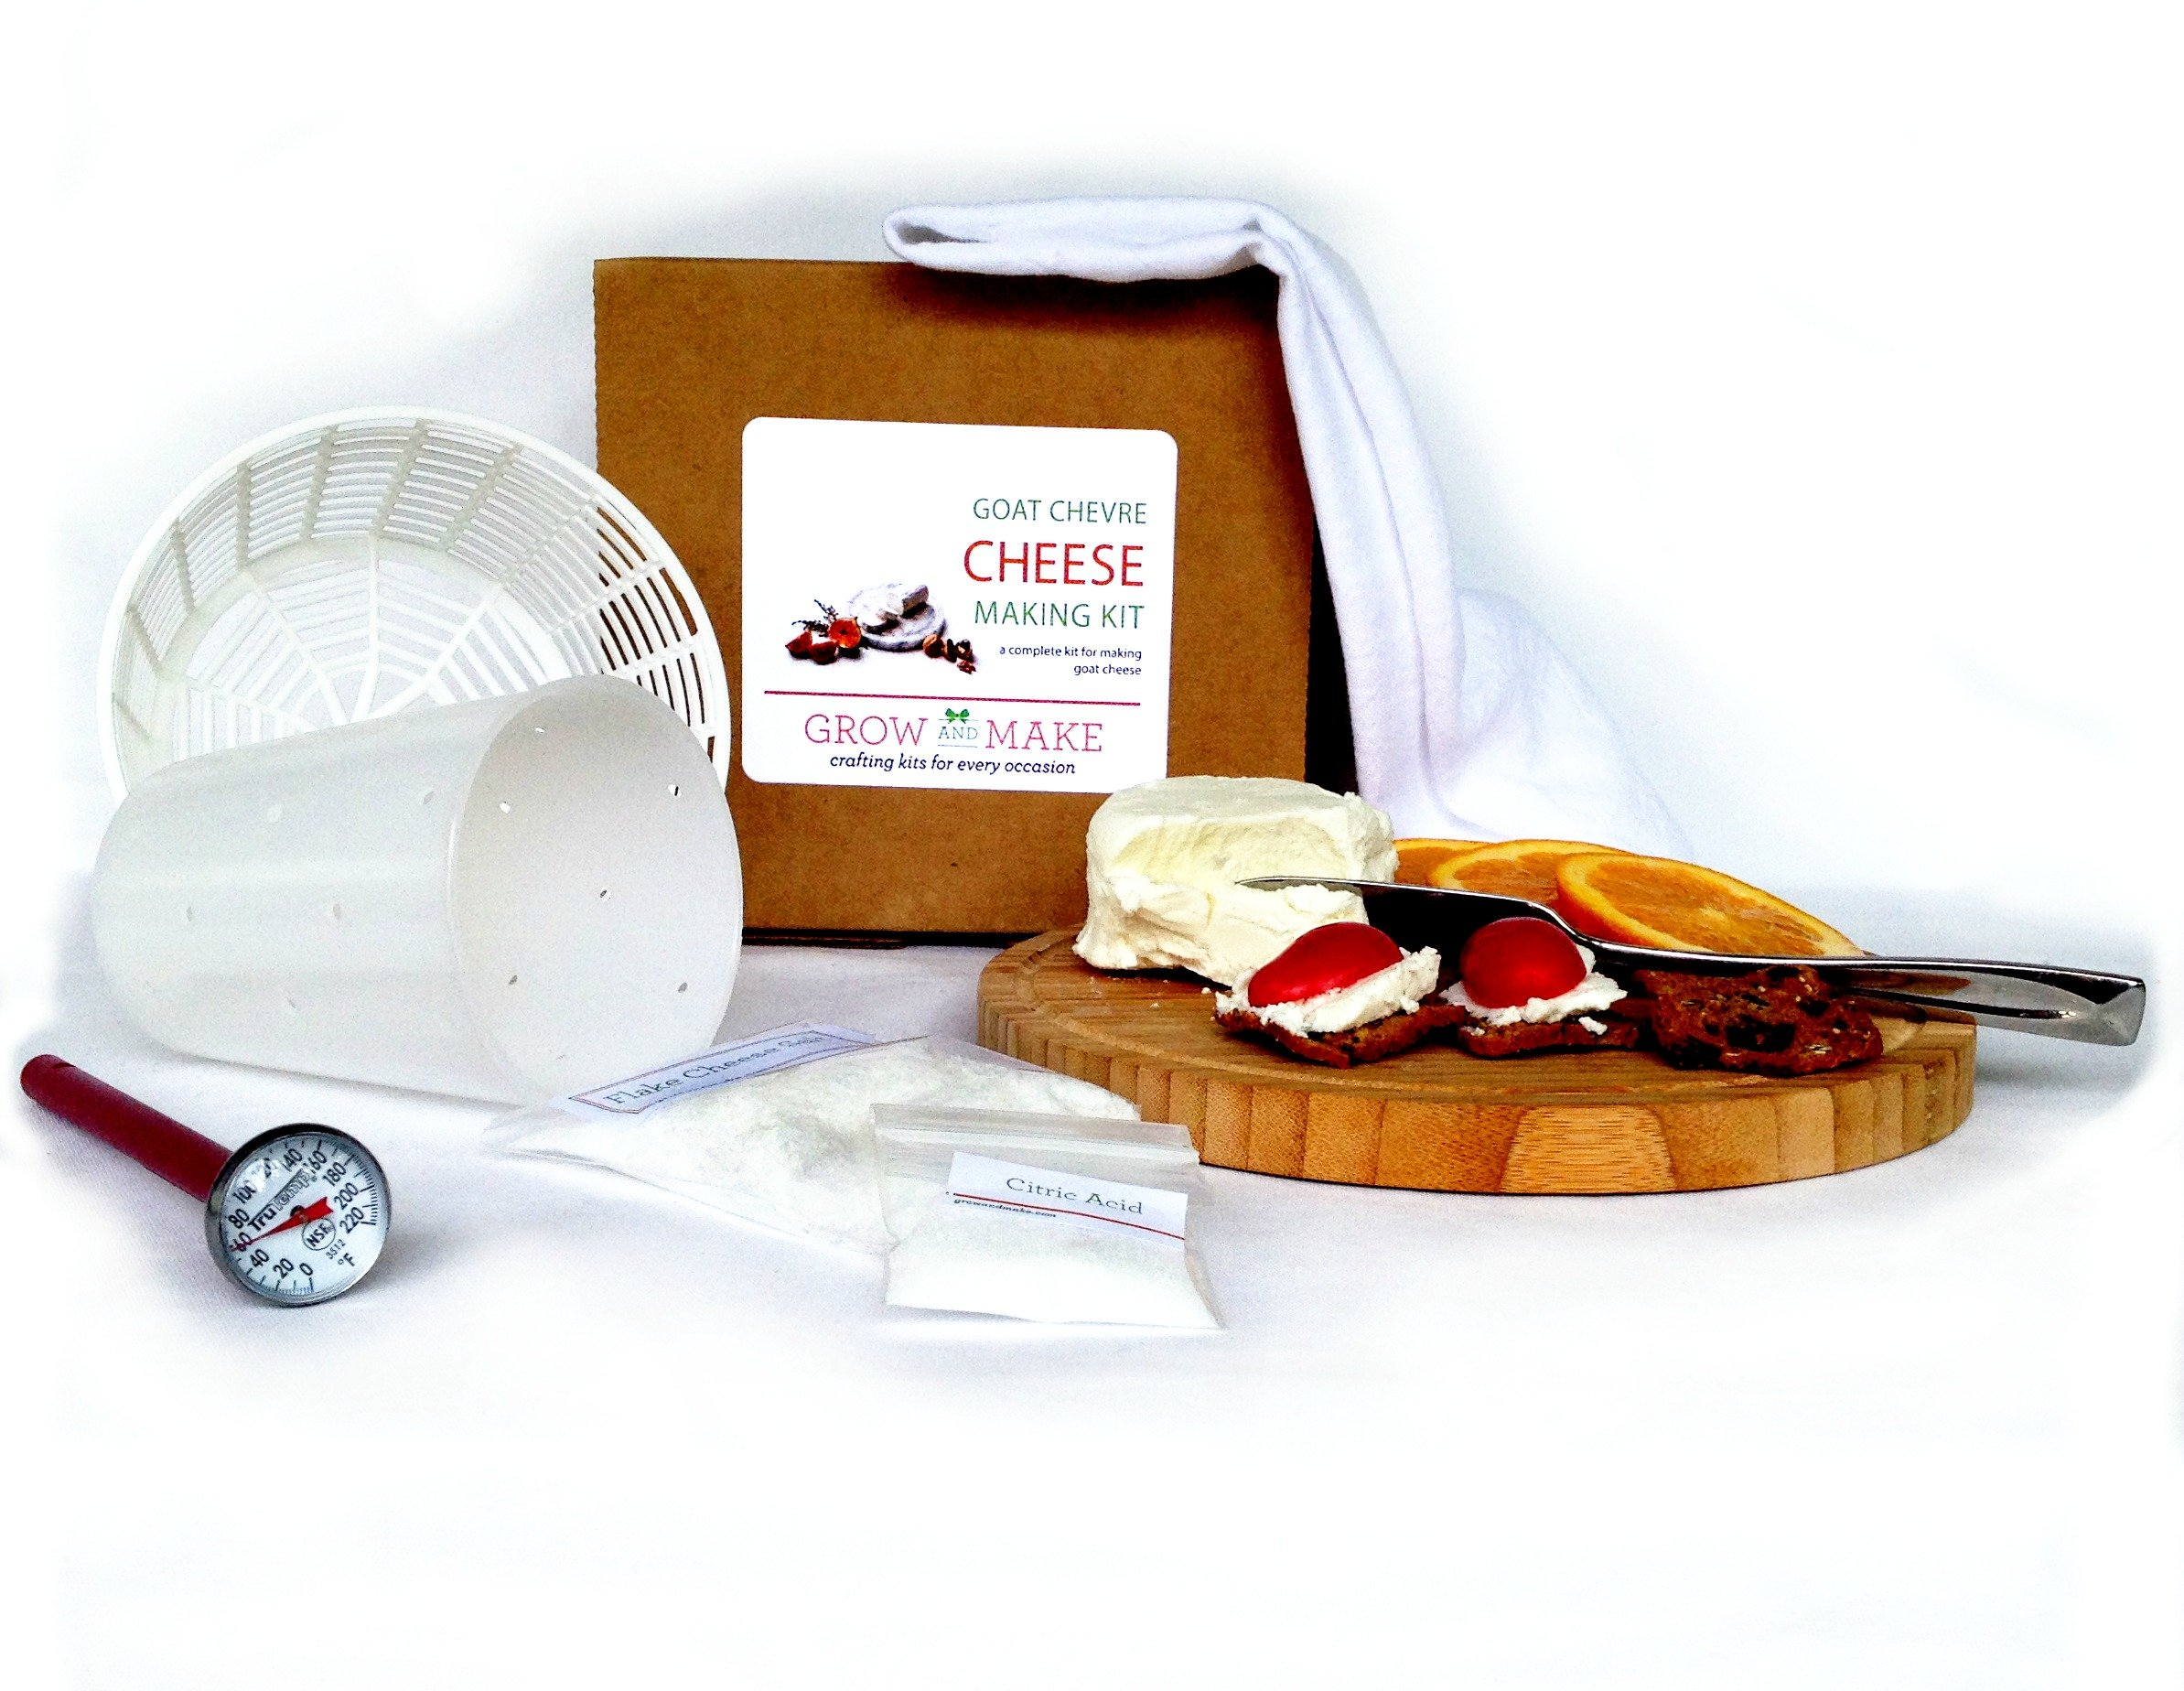 Artisan DIY Goat Chevre Cheese Making Kit - Learn how to make home made goat cheese